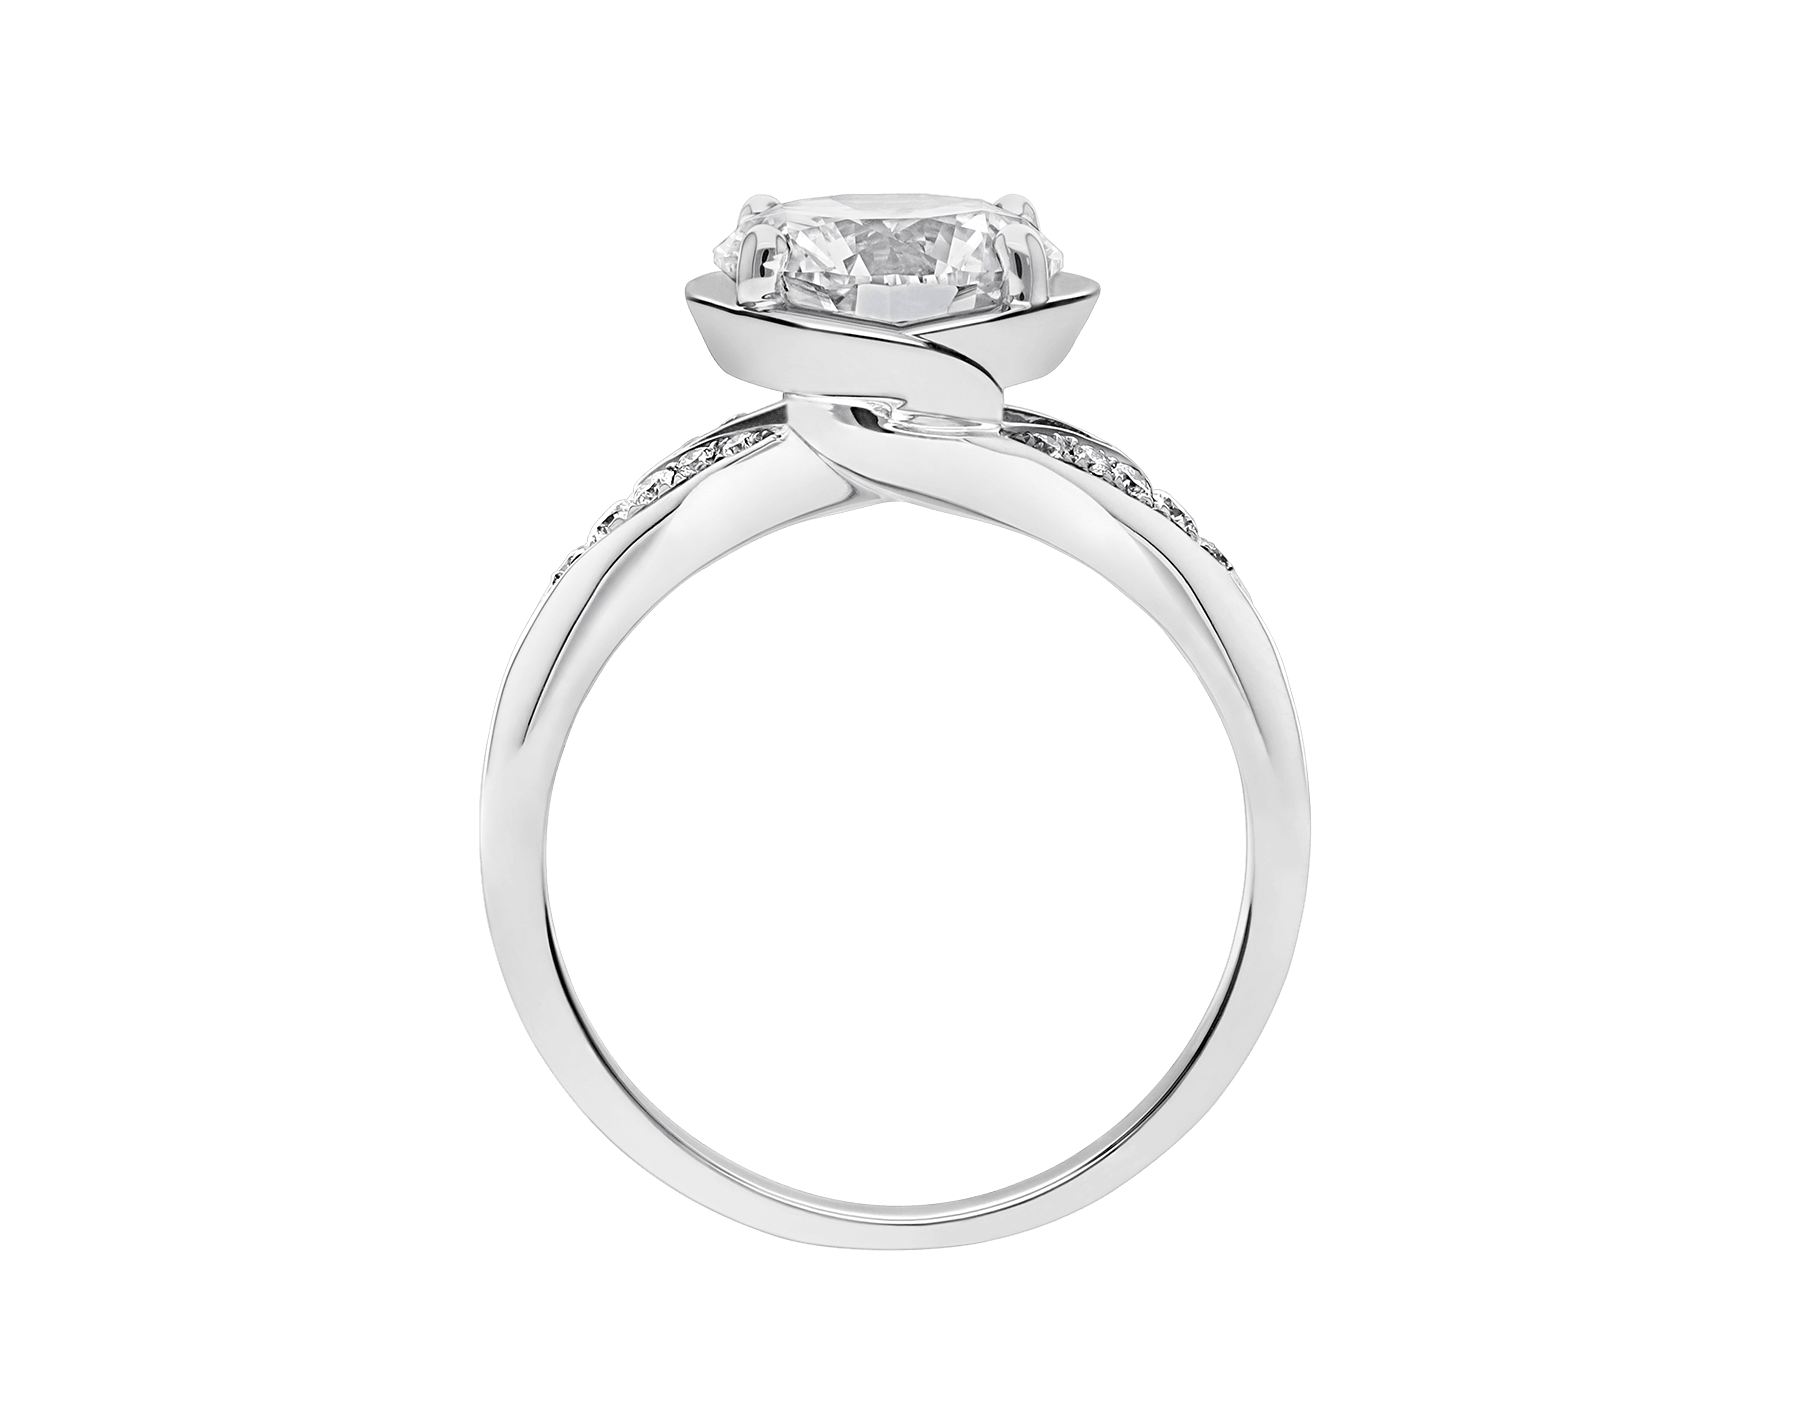 Incontro d'Amore ring in platinum with round brilliant-cut diamond and pavé diamonds. Available from 0.20 ct. As its pavé rows embrace a diamond apex, Incontro d'Amore joins two hearts as one. 355808 image 4